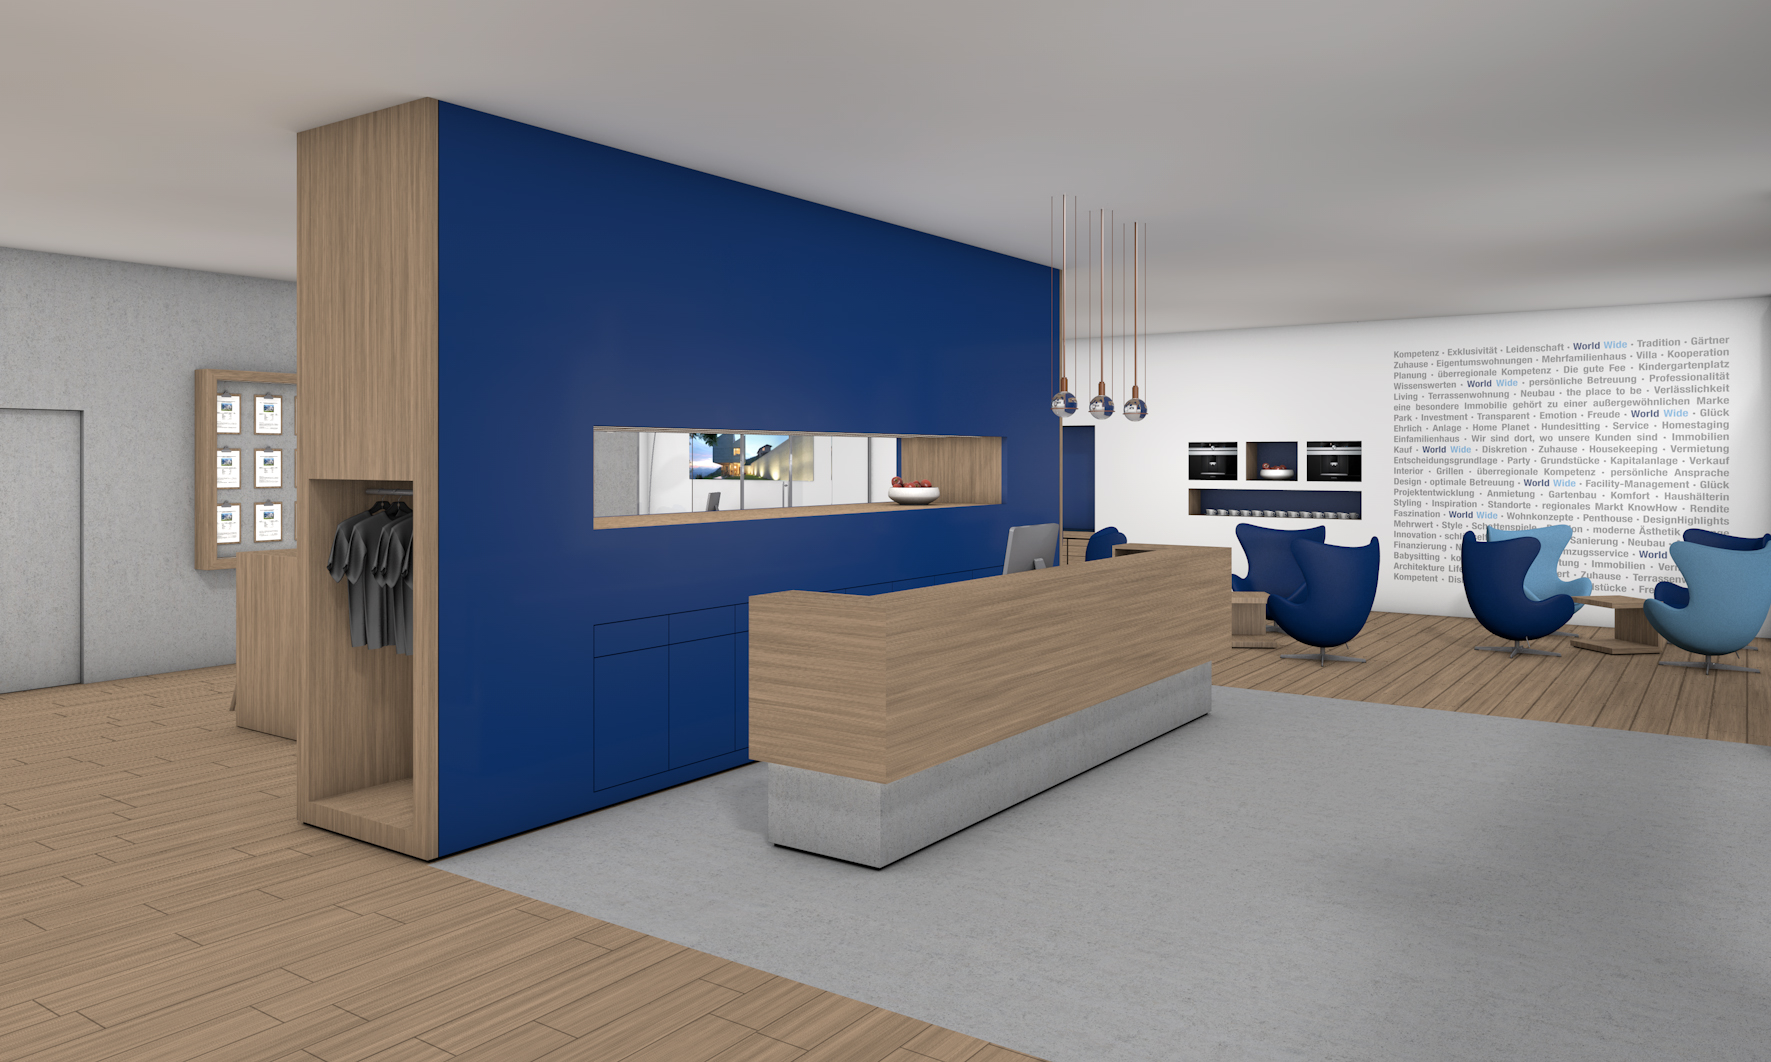 Ladenbau visualandconcepts